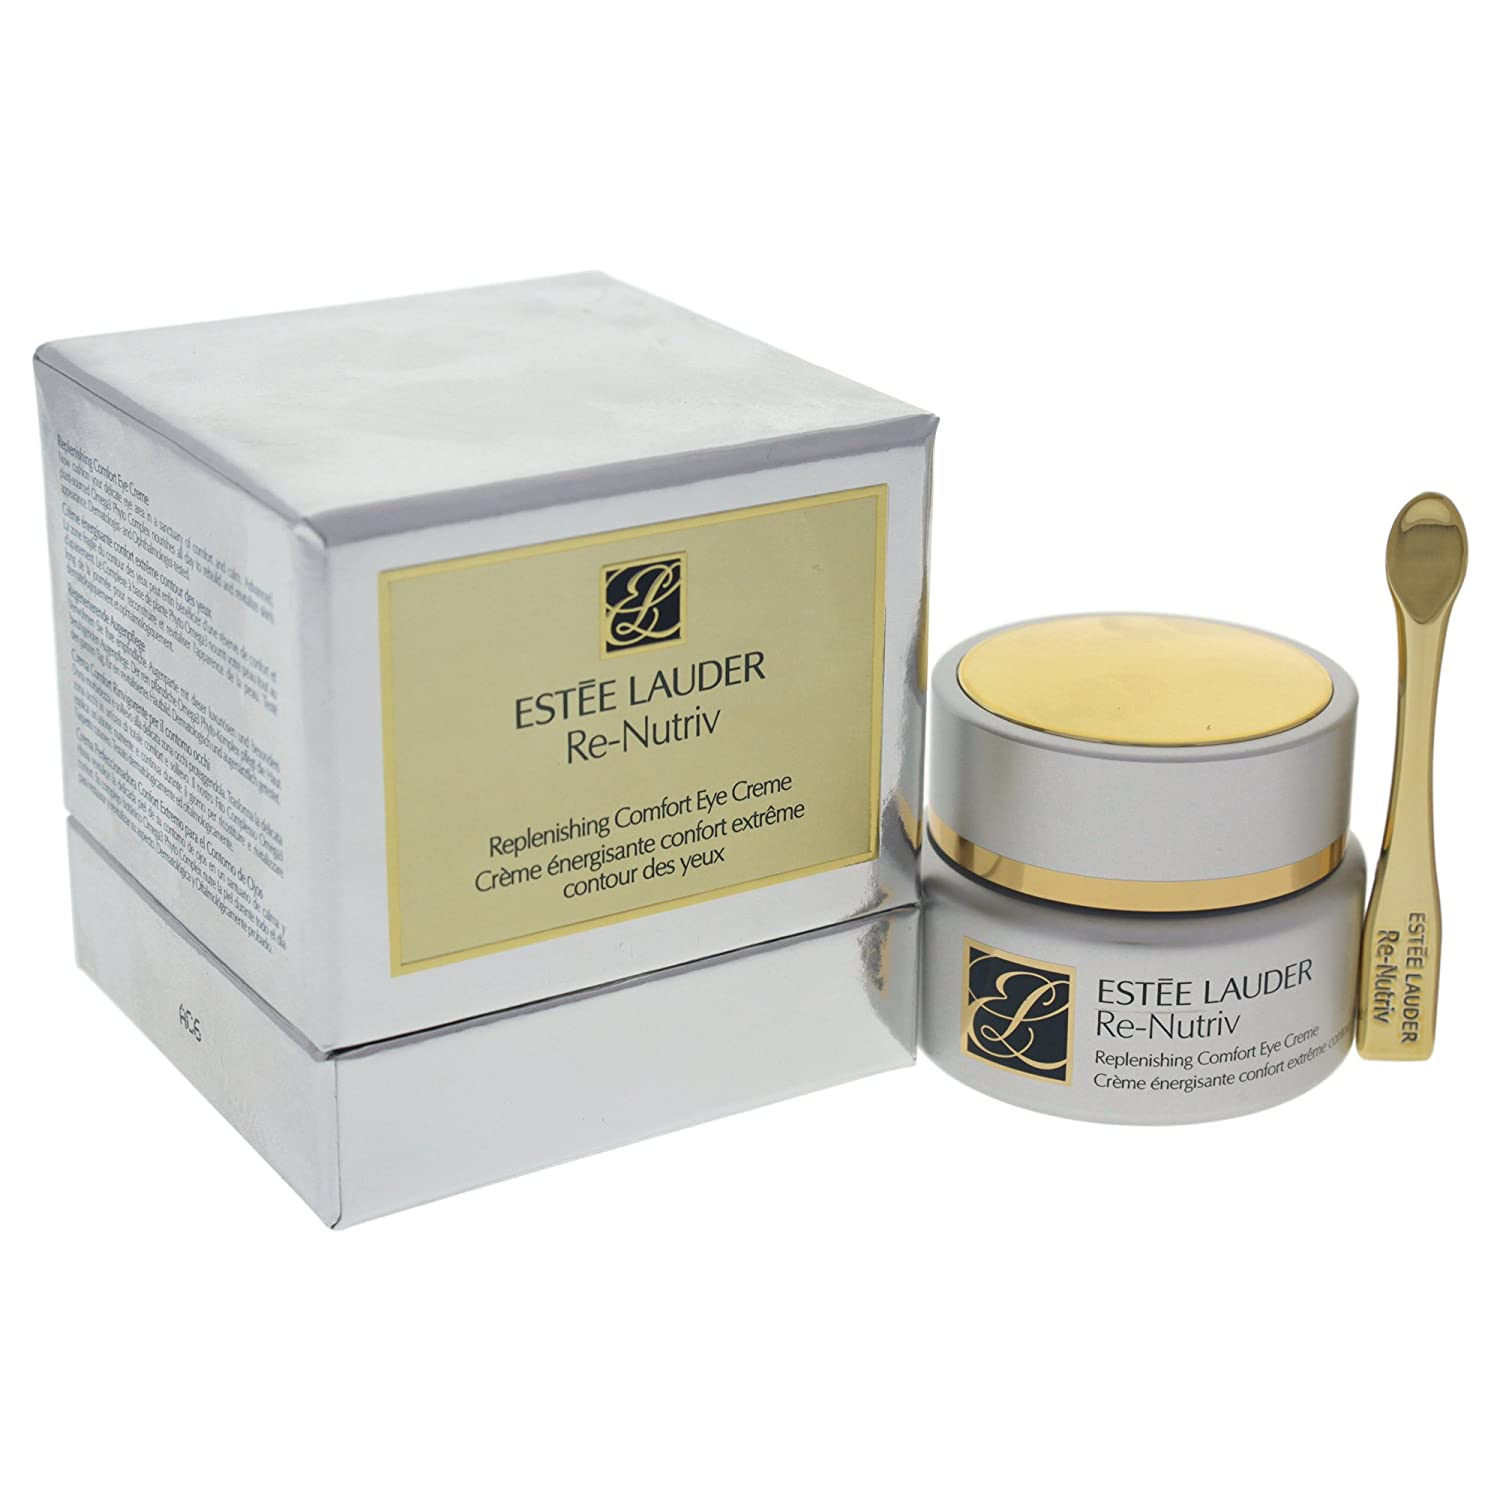 Estee Lauder 35533 Crema Antirughe Body Gels And Creams EST00178